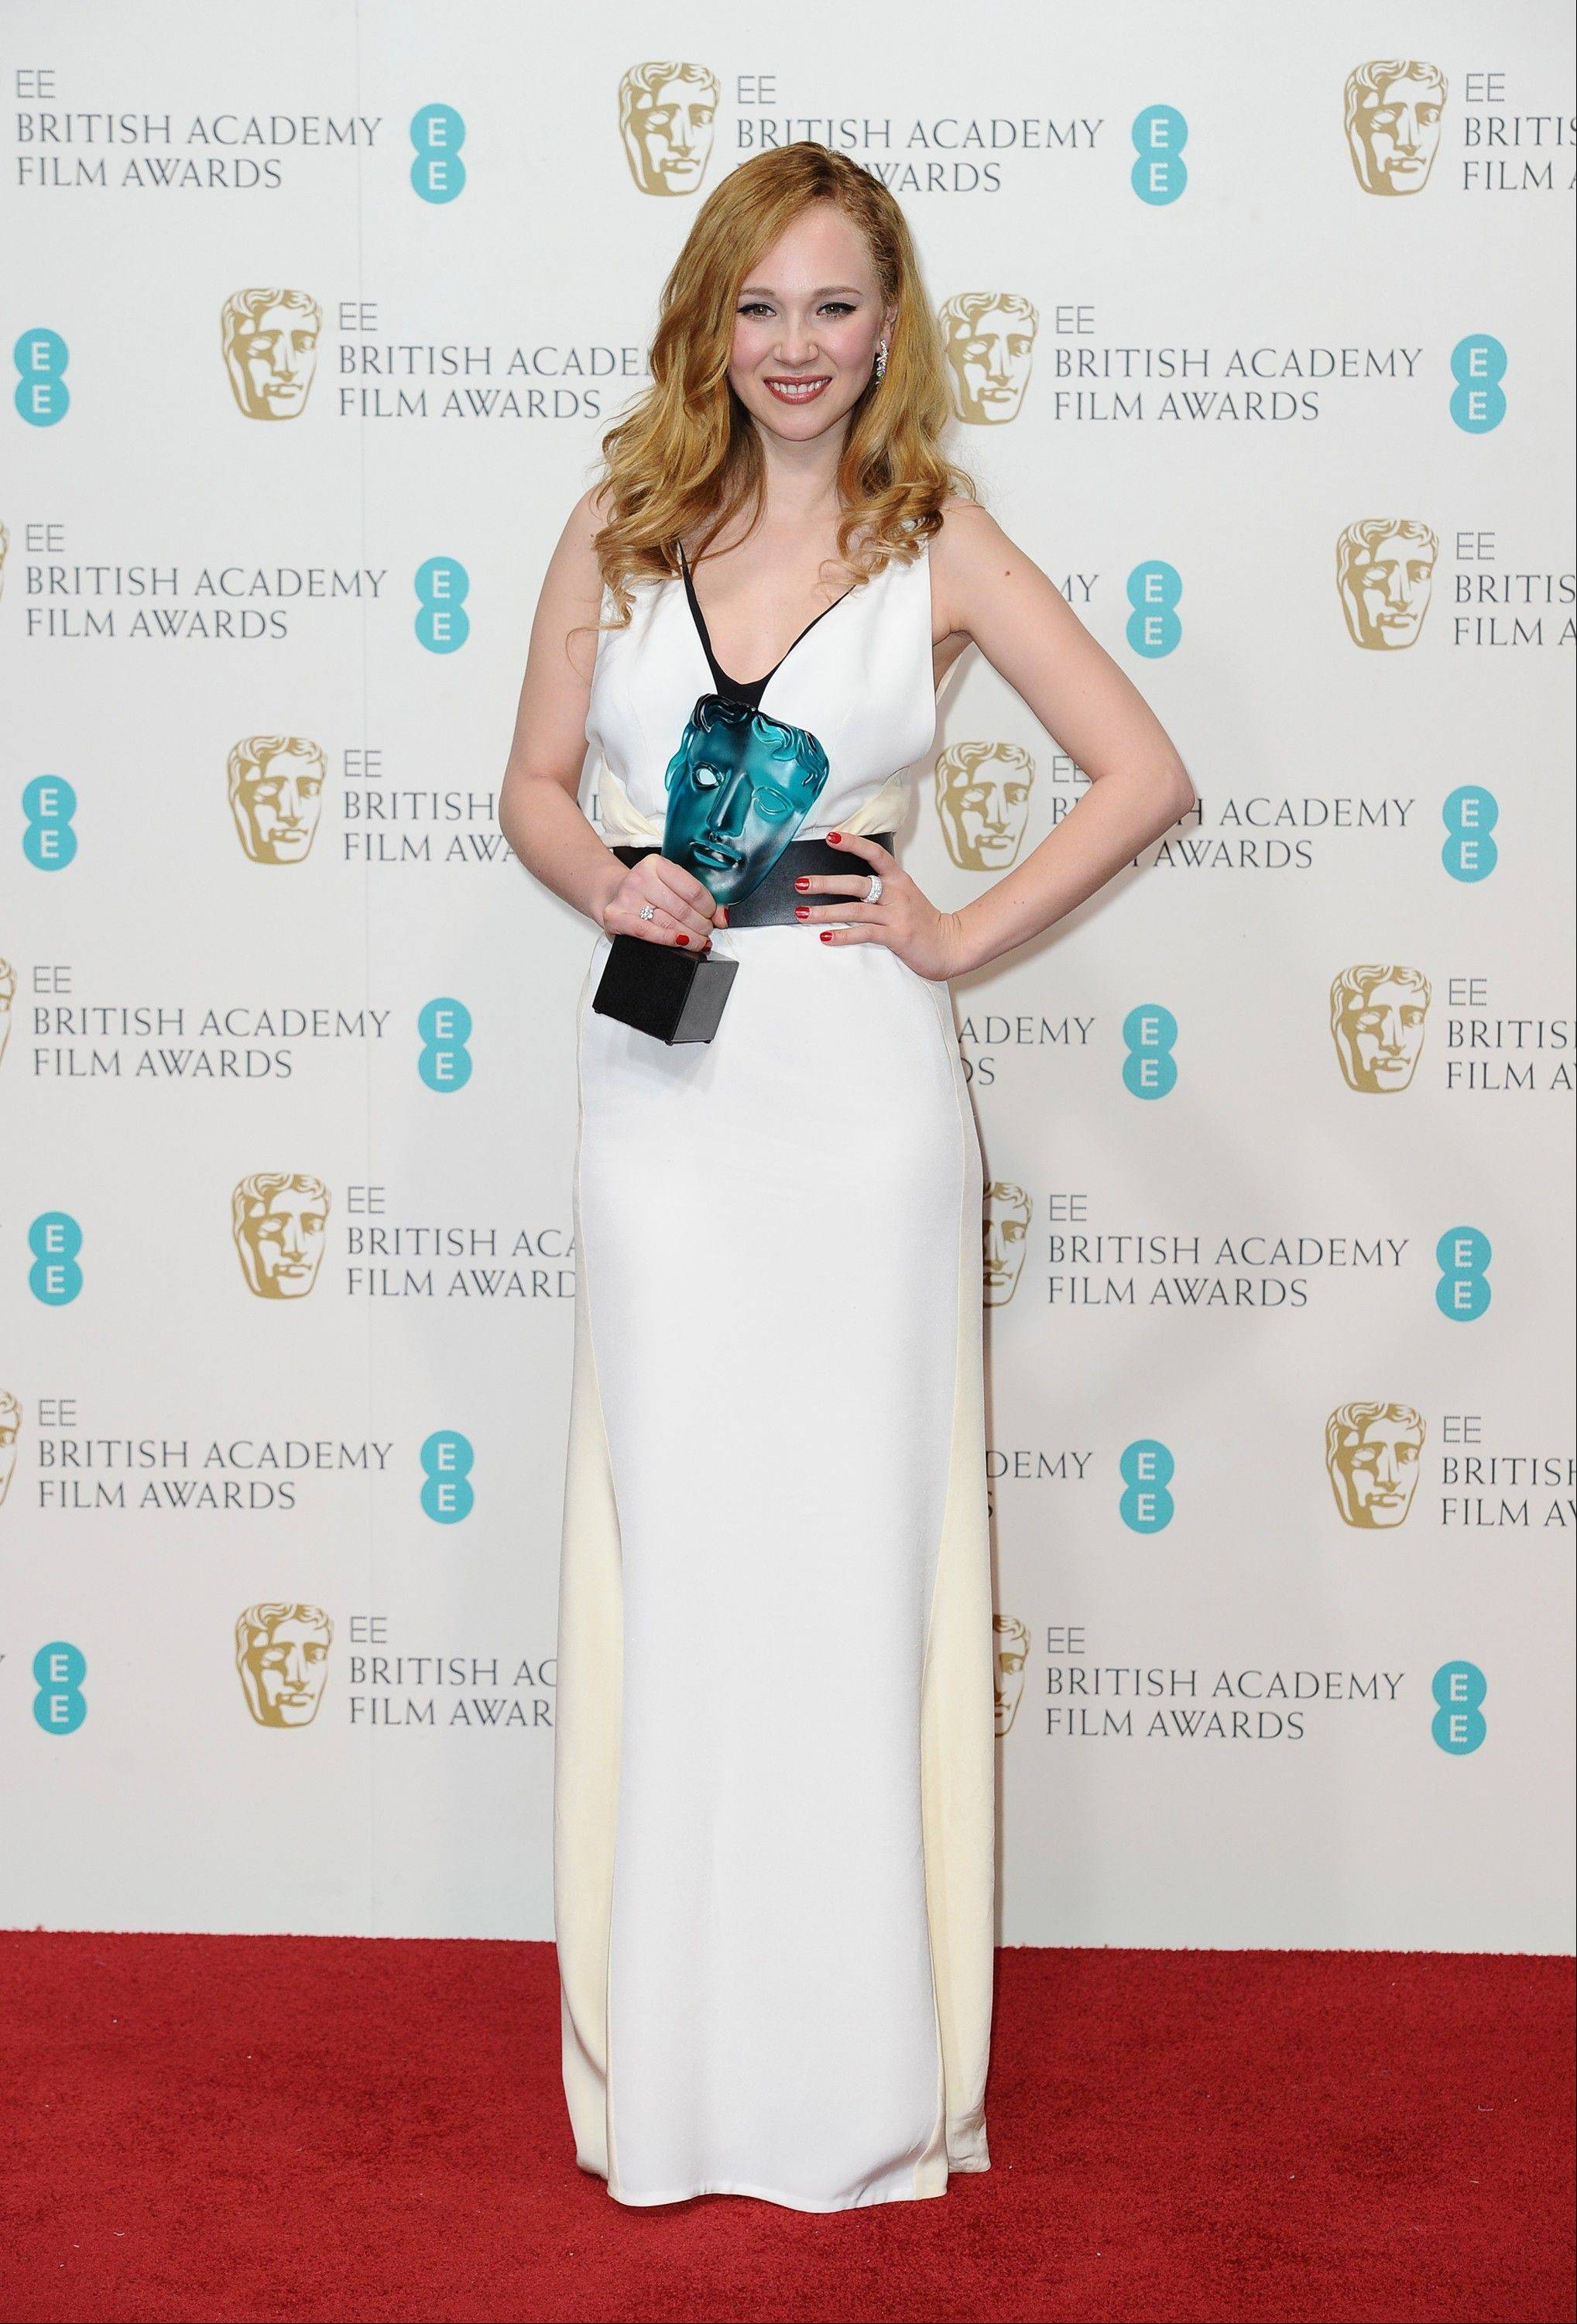 English actress Juno Temple poses with the EE Rising Star Award backstage at the BAFTA Film Awards at the Royal Opera House on Sunday, Feb. 10, 2013, in London.